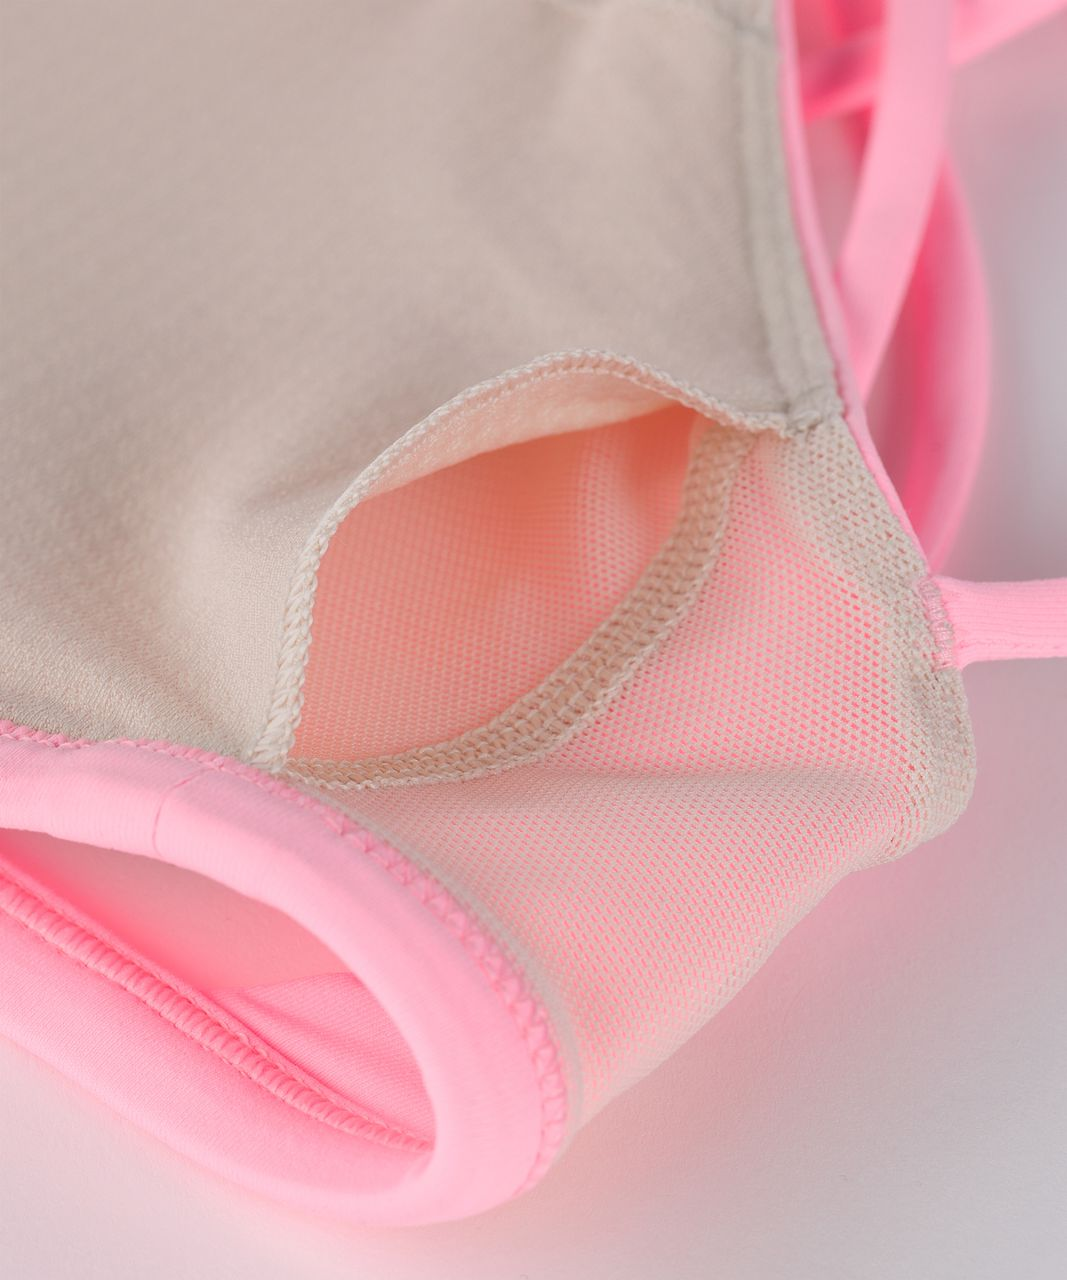 Lululemon Free To Be Bra (Wild) - Pink Shell